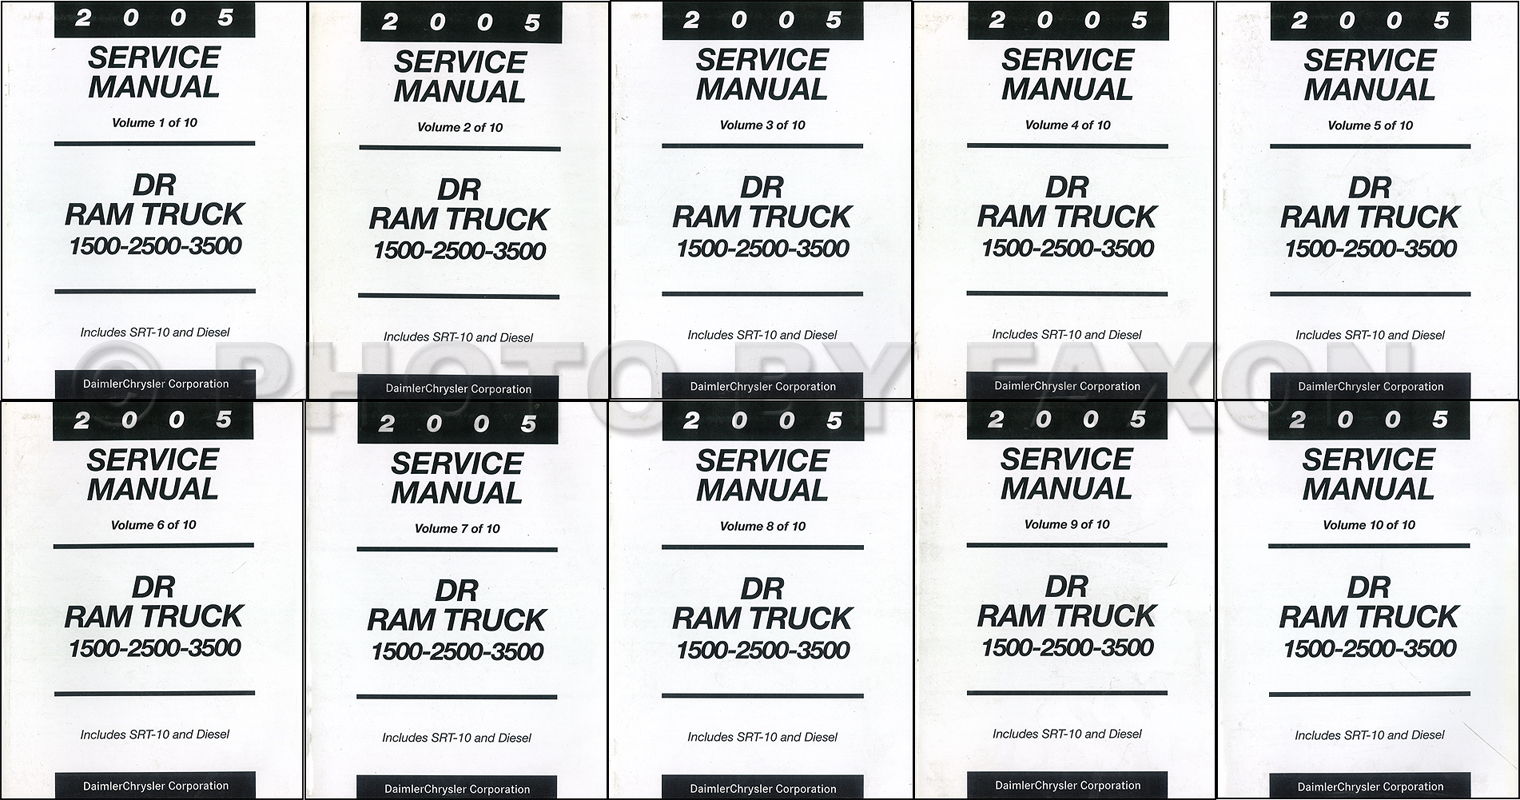 2005 Dodge Ram Truck Repair Shop Manual 10 Vol. Set Factory Reprint 1500  2500 3500